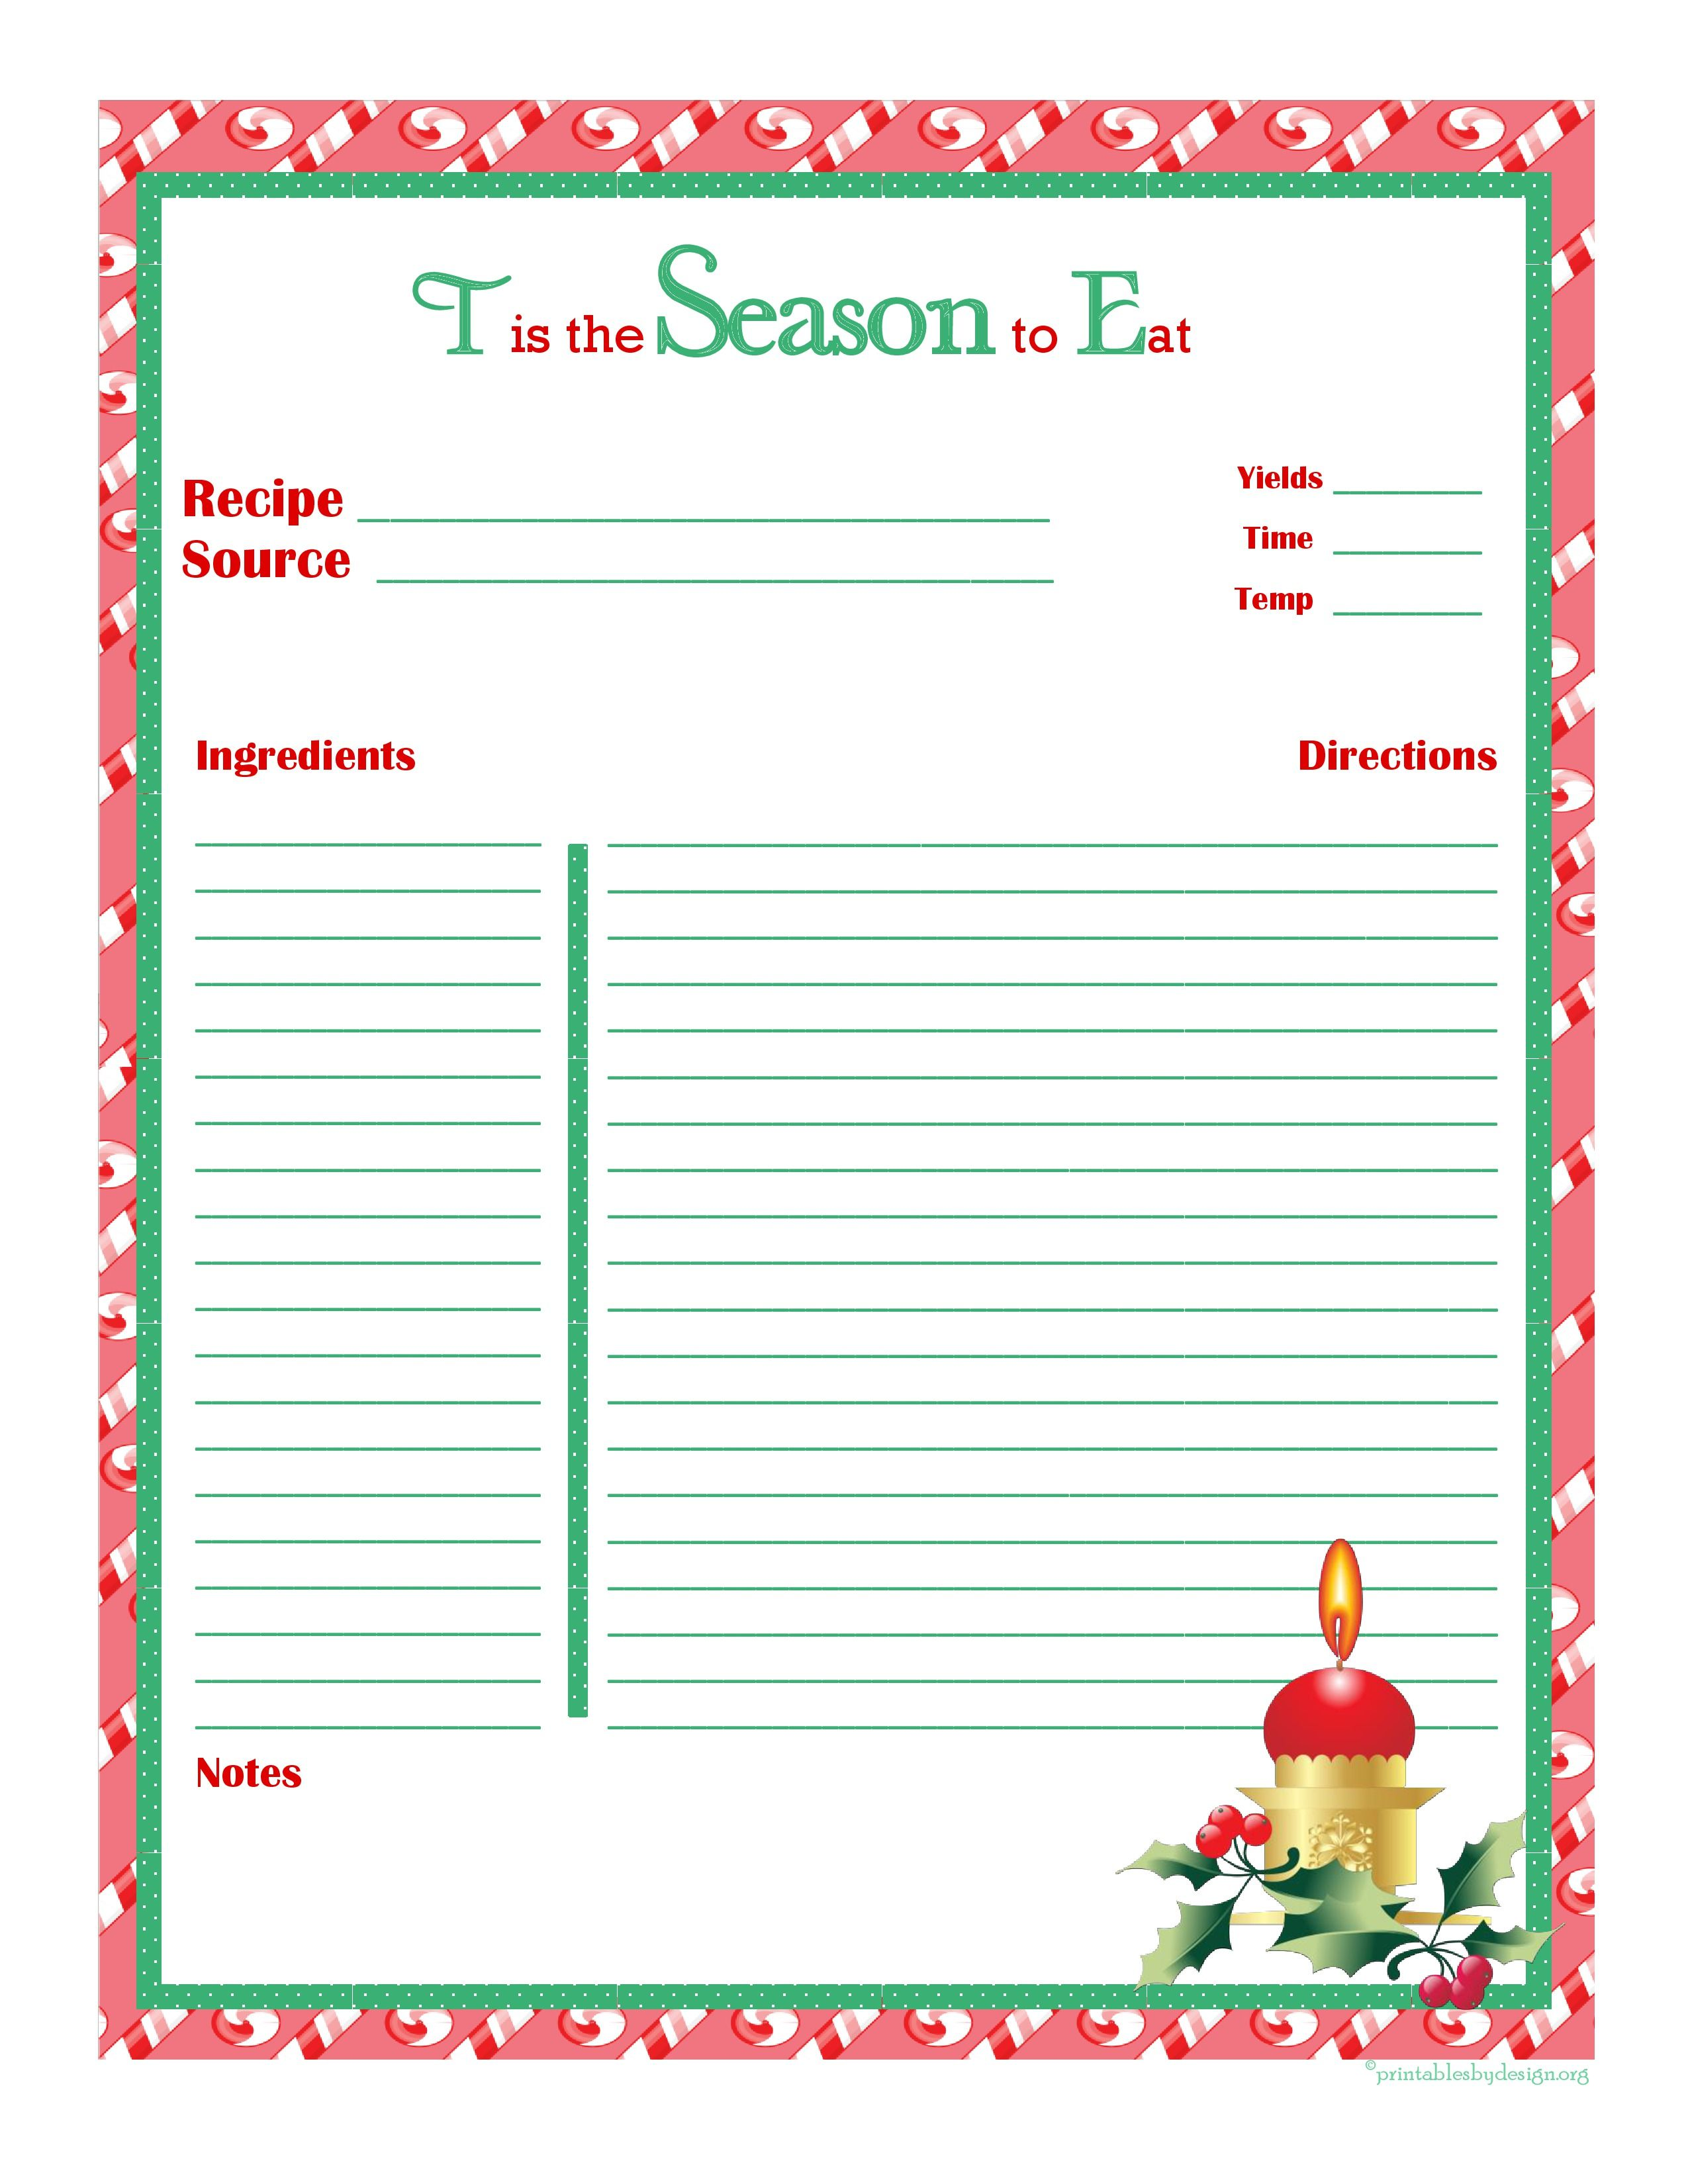 Christmas Recipe Card Full Page Christmas Recipe Cards Printable Recipe Cards Template Christmas Recipe Cards